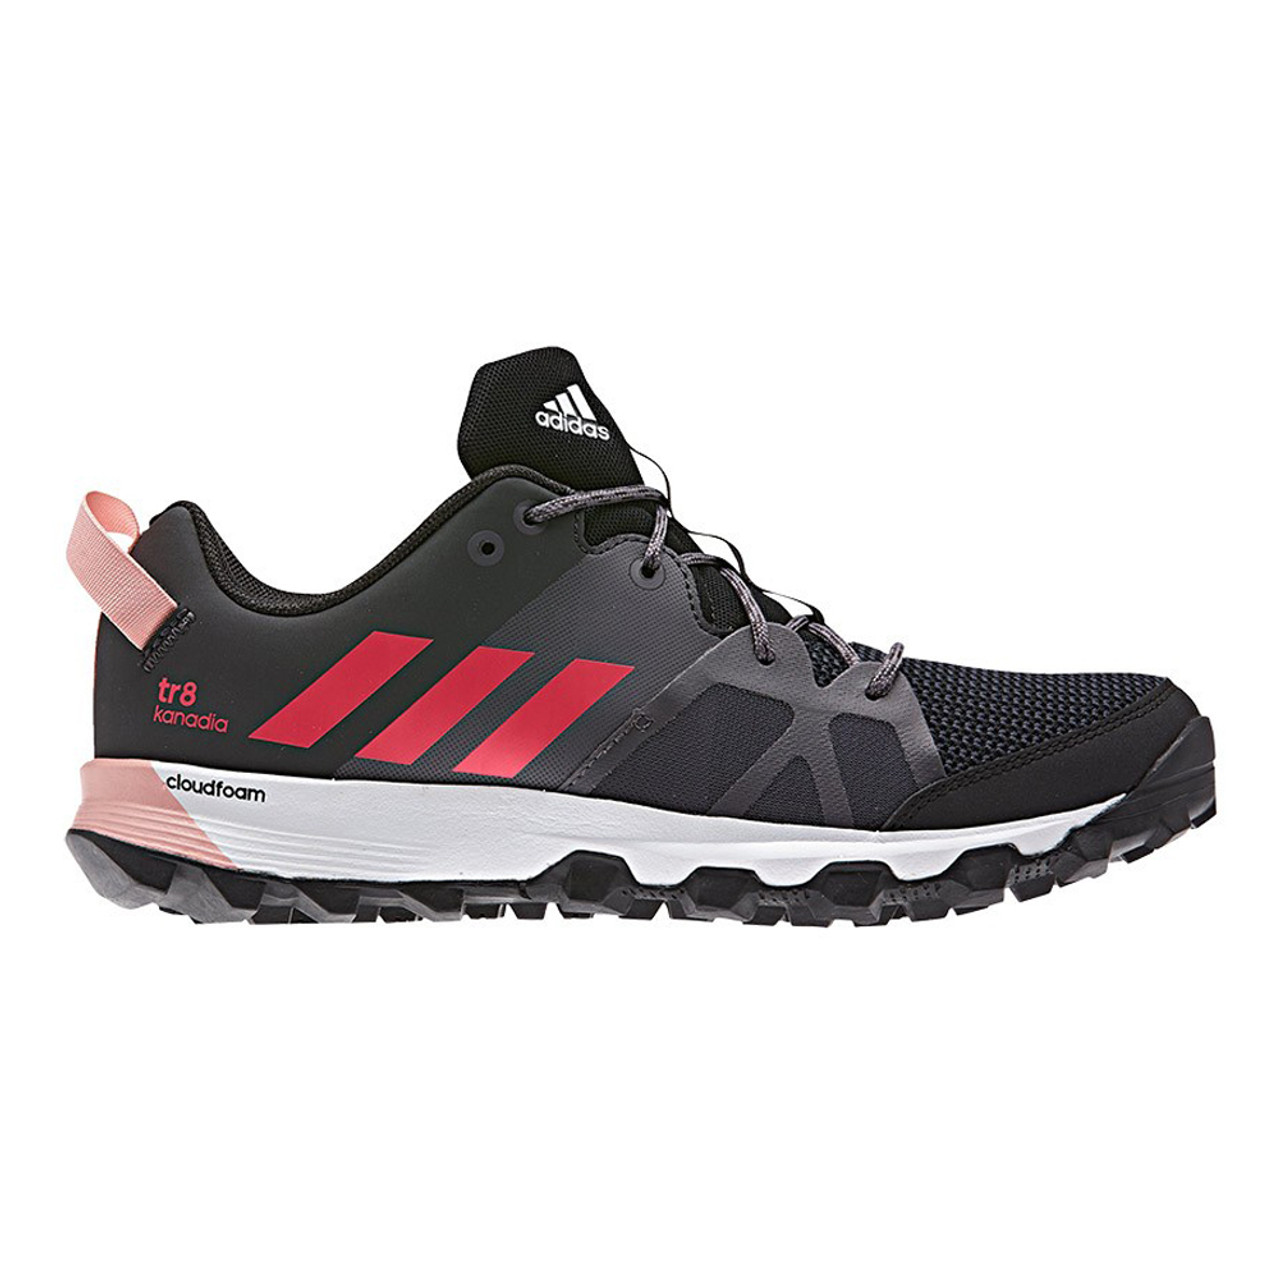 485a453a4f18 Adidas Women s Kanadia 8 Trail Running Shoe Black Pink Grey - Shop now